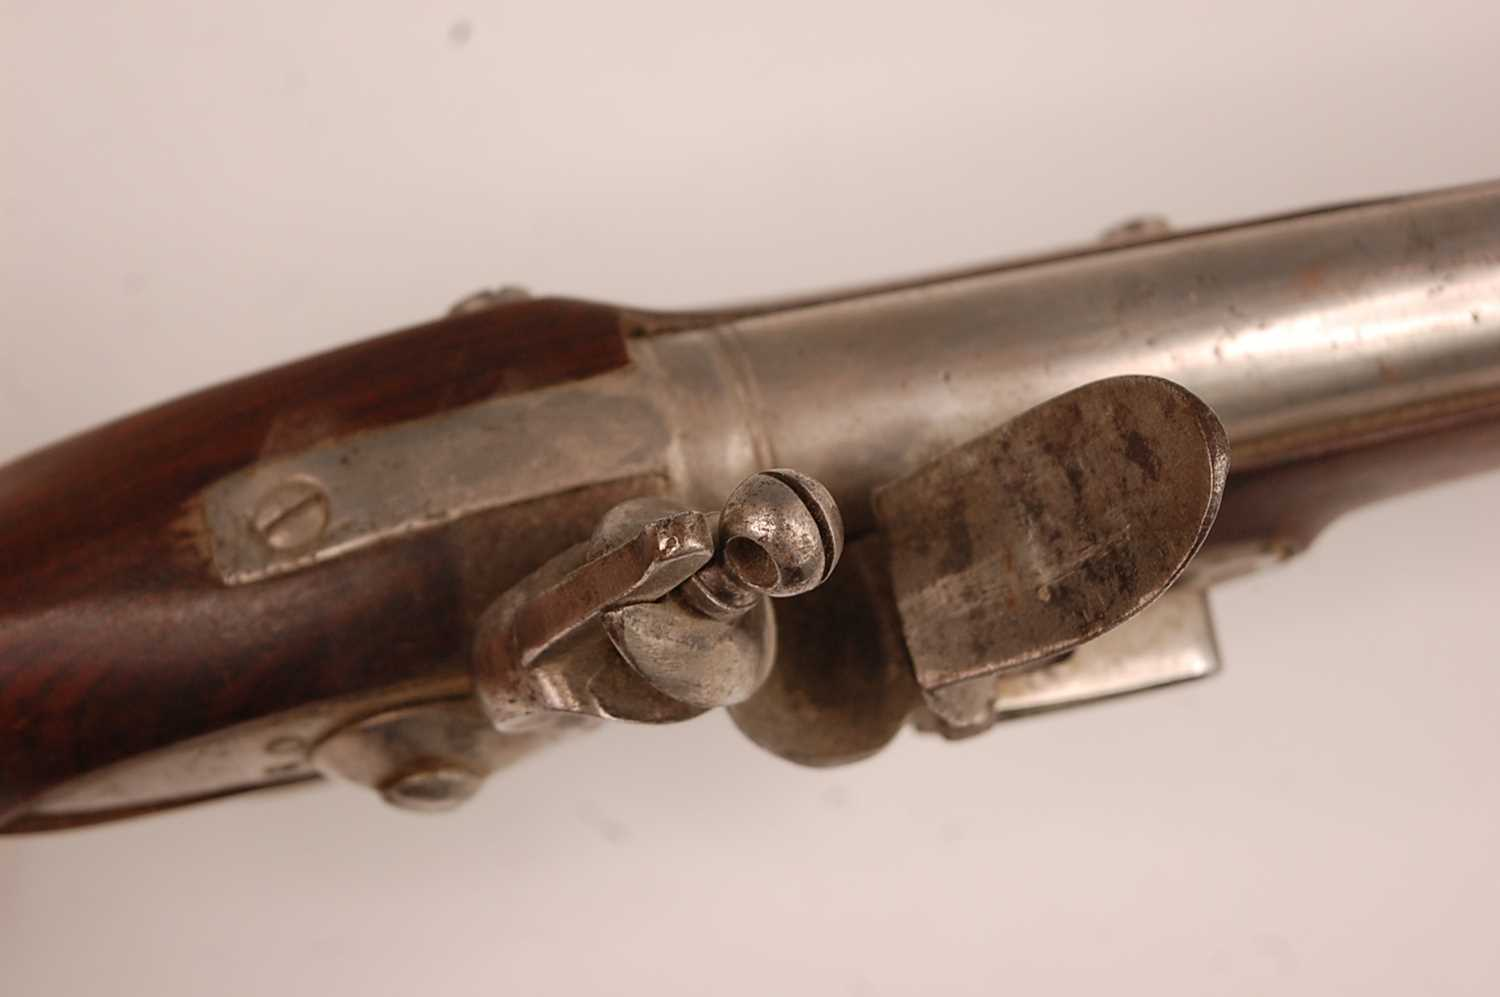 An India pattern Brown Bess type East India flintlock musket, having a 93cm barrel with ram-rod - Image 8 of 22